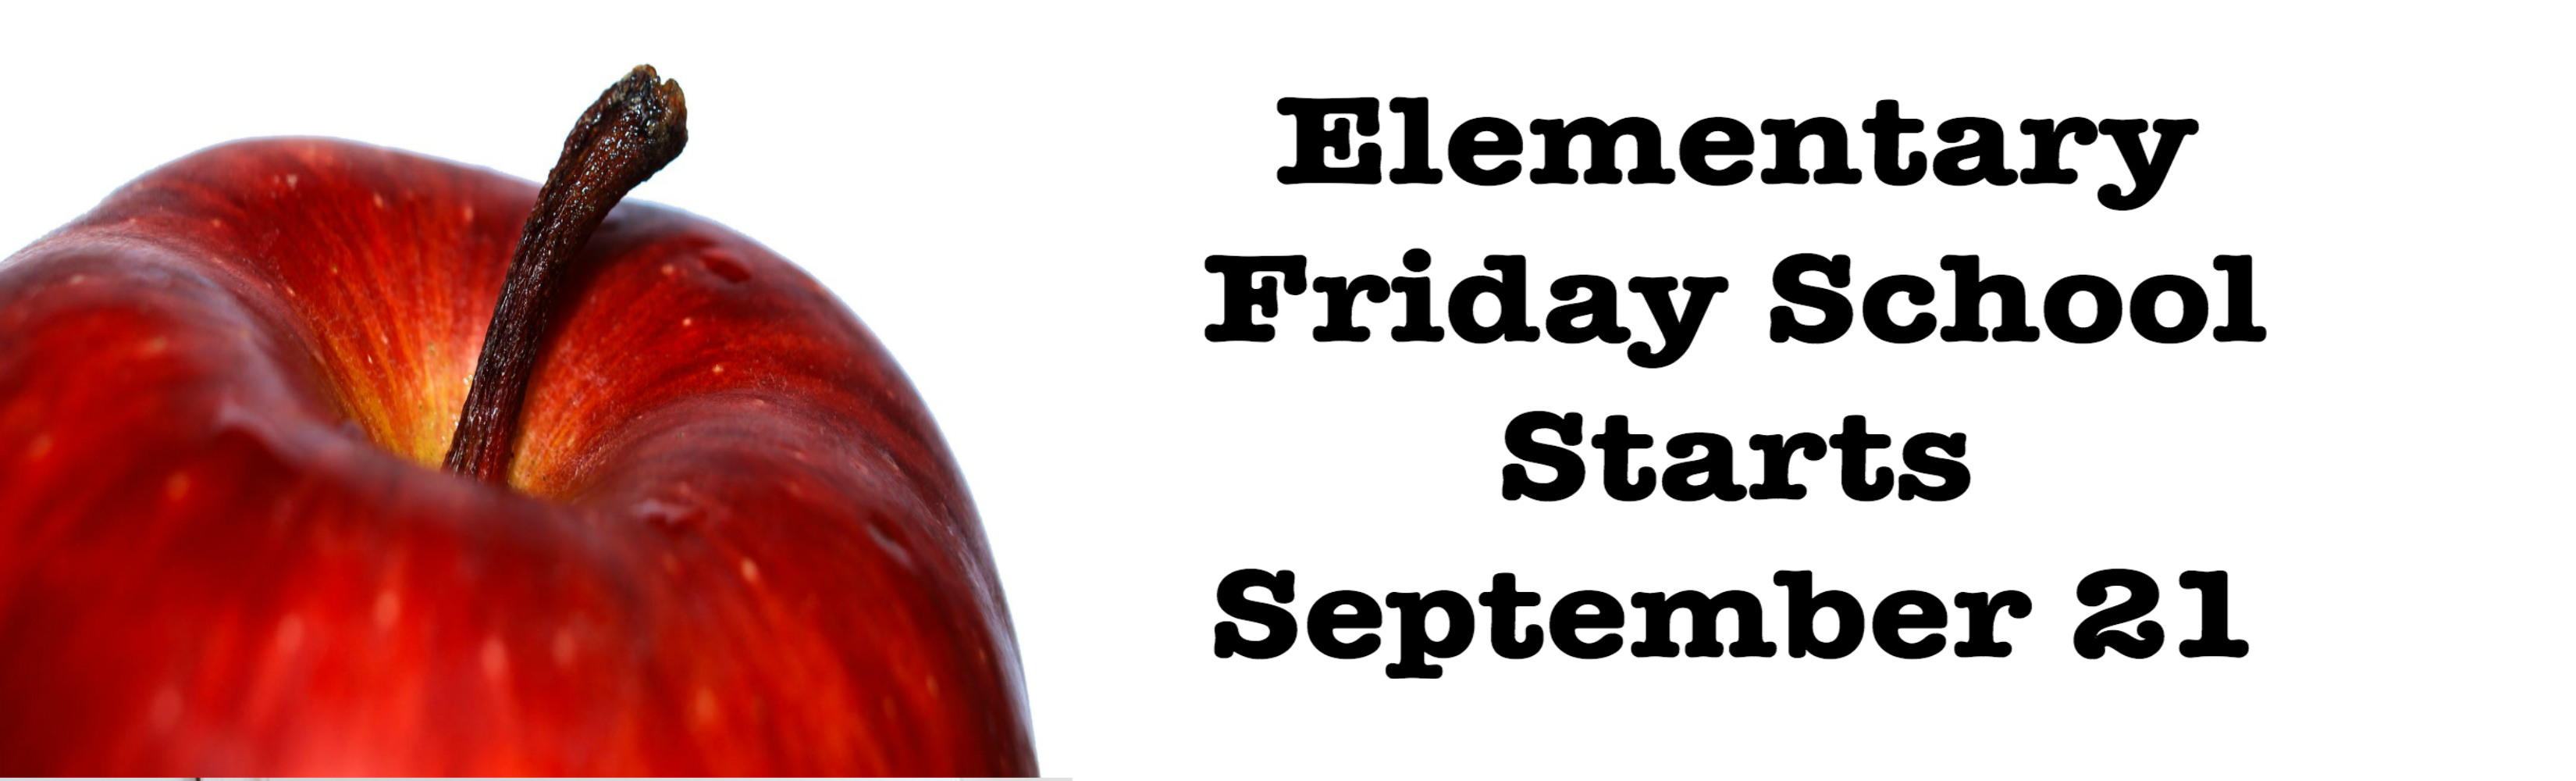 Elementary-Friday-School-Sept-21